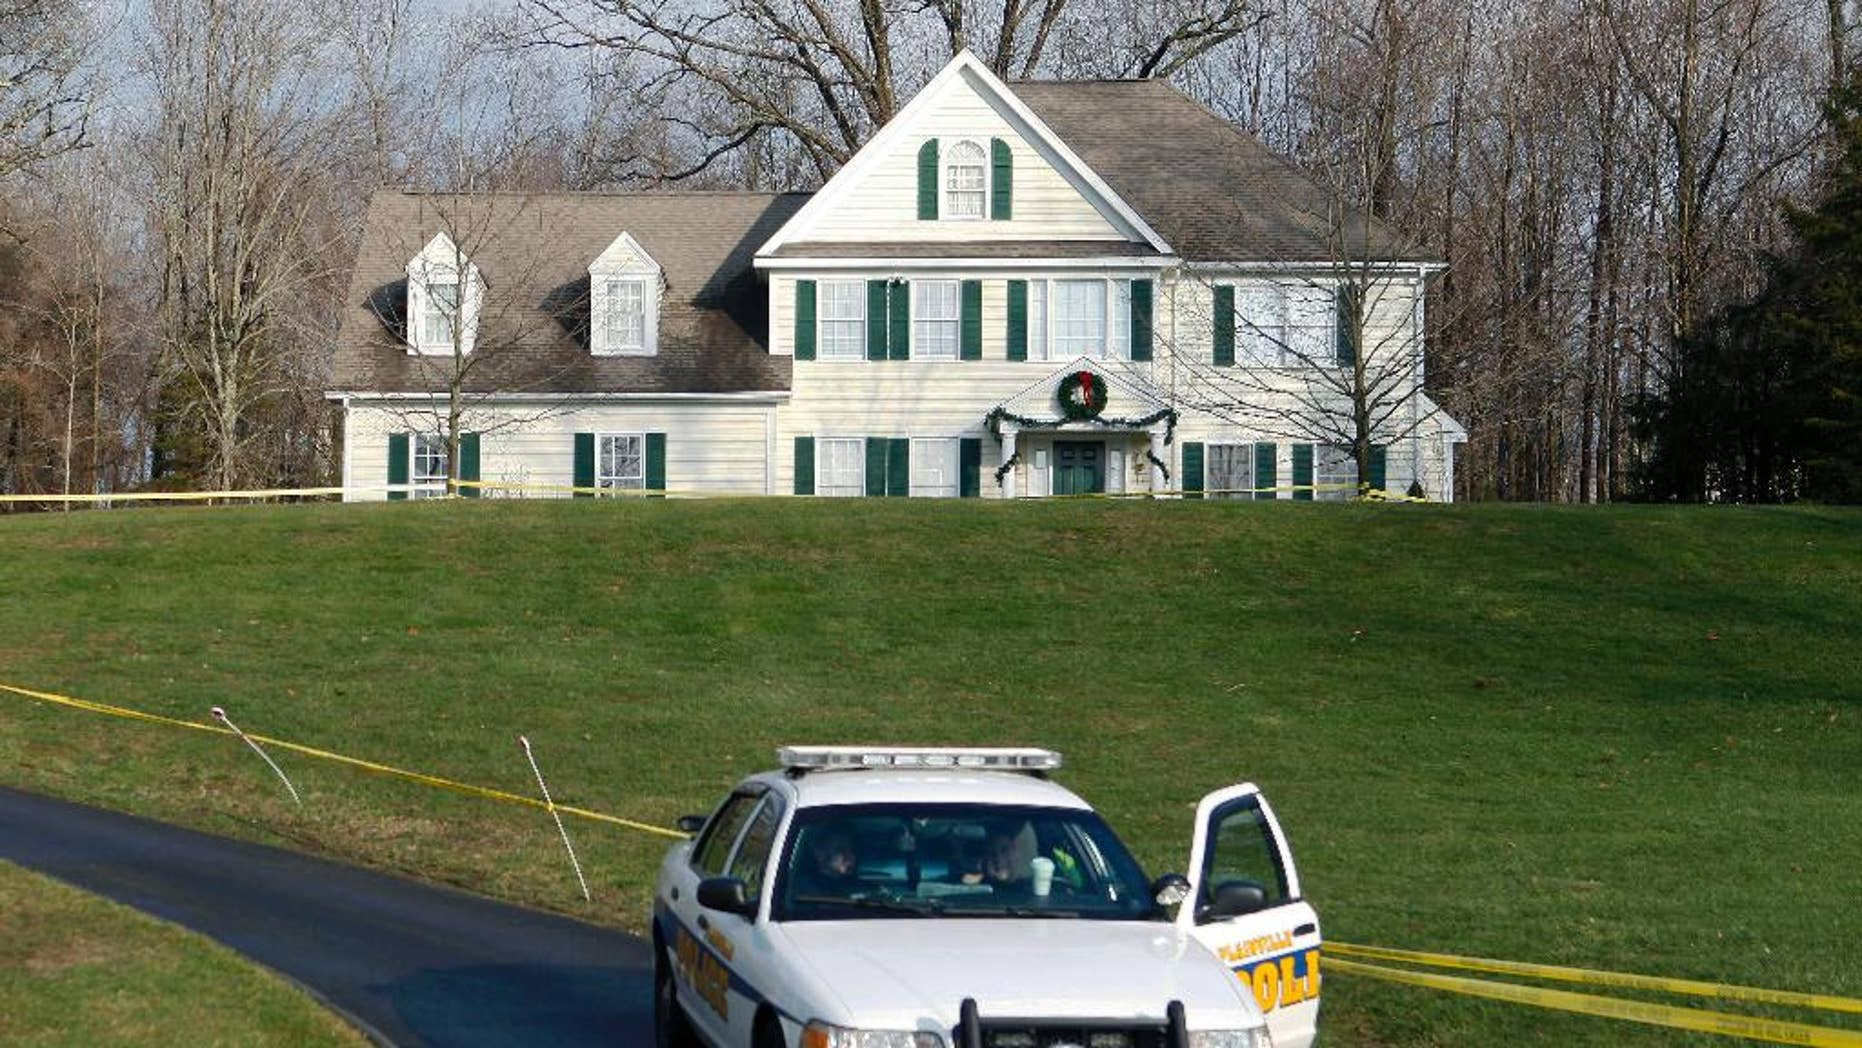 FILE - In this Dec. 18, 2012 file photo a police cruiser sits in the driveway of the home of Nancy Lanza, in Newtown, Conn. The Colonial-style home where Newtown school shooter Adam Lanza lived with his mother has been transferred to the town in a deal with a bank. Nancy Lanza was killed there by her son before he forced his way into Sandy Hook Elementary School, Dec. 14, 2012, in Newtown, where he killed 20 first-graders and six educators. The future use of the house and property will be decided later. (AP Photo/Jason DeCrow, File)